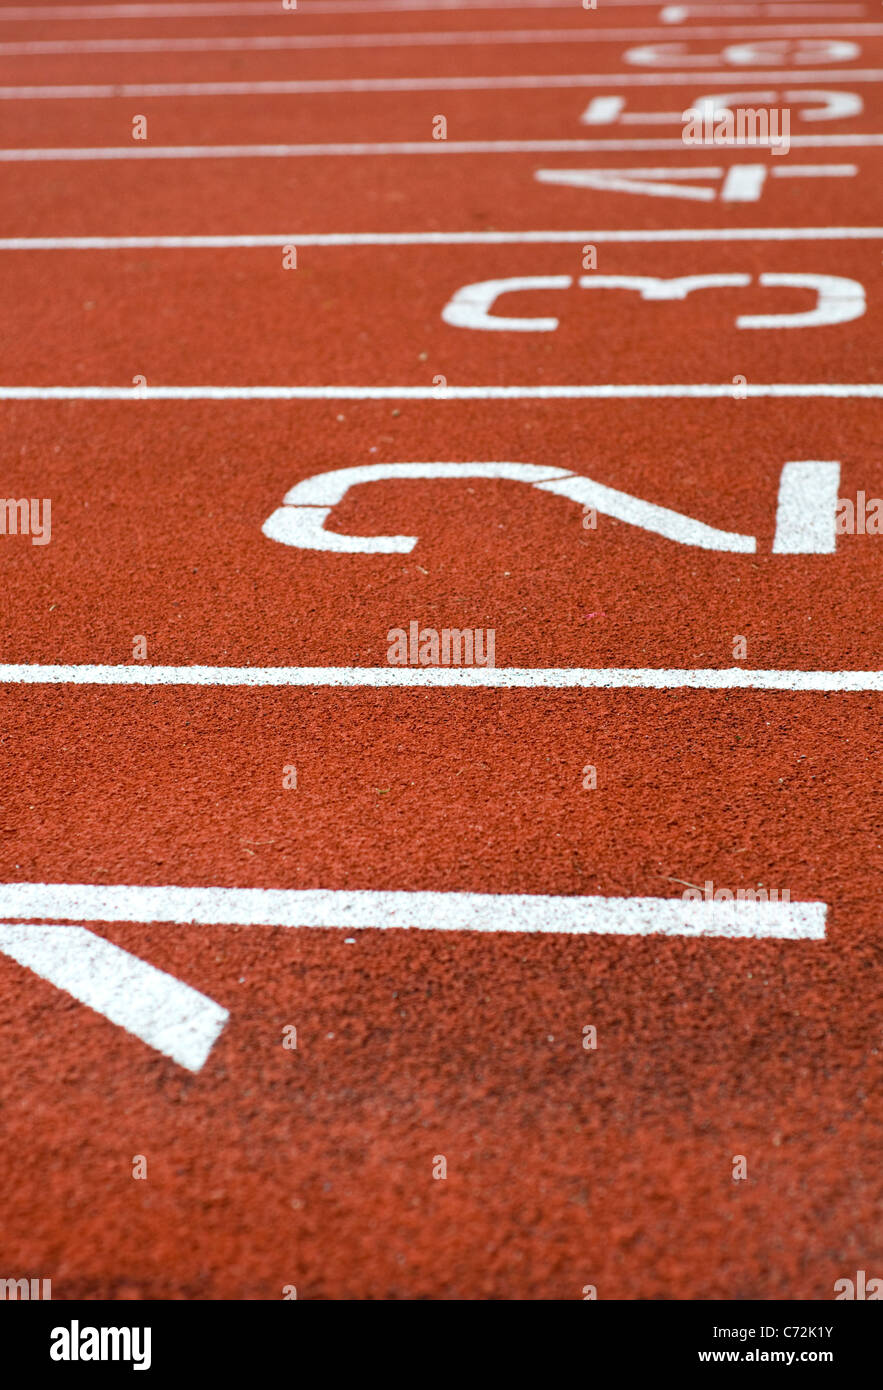 Close up of the lanes on an outdoor athletics track - Stock Image